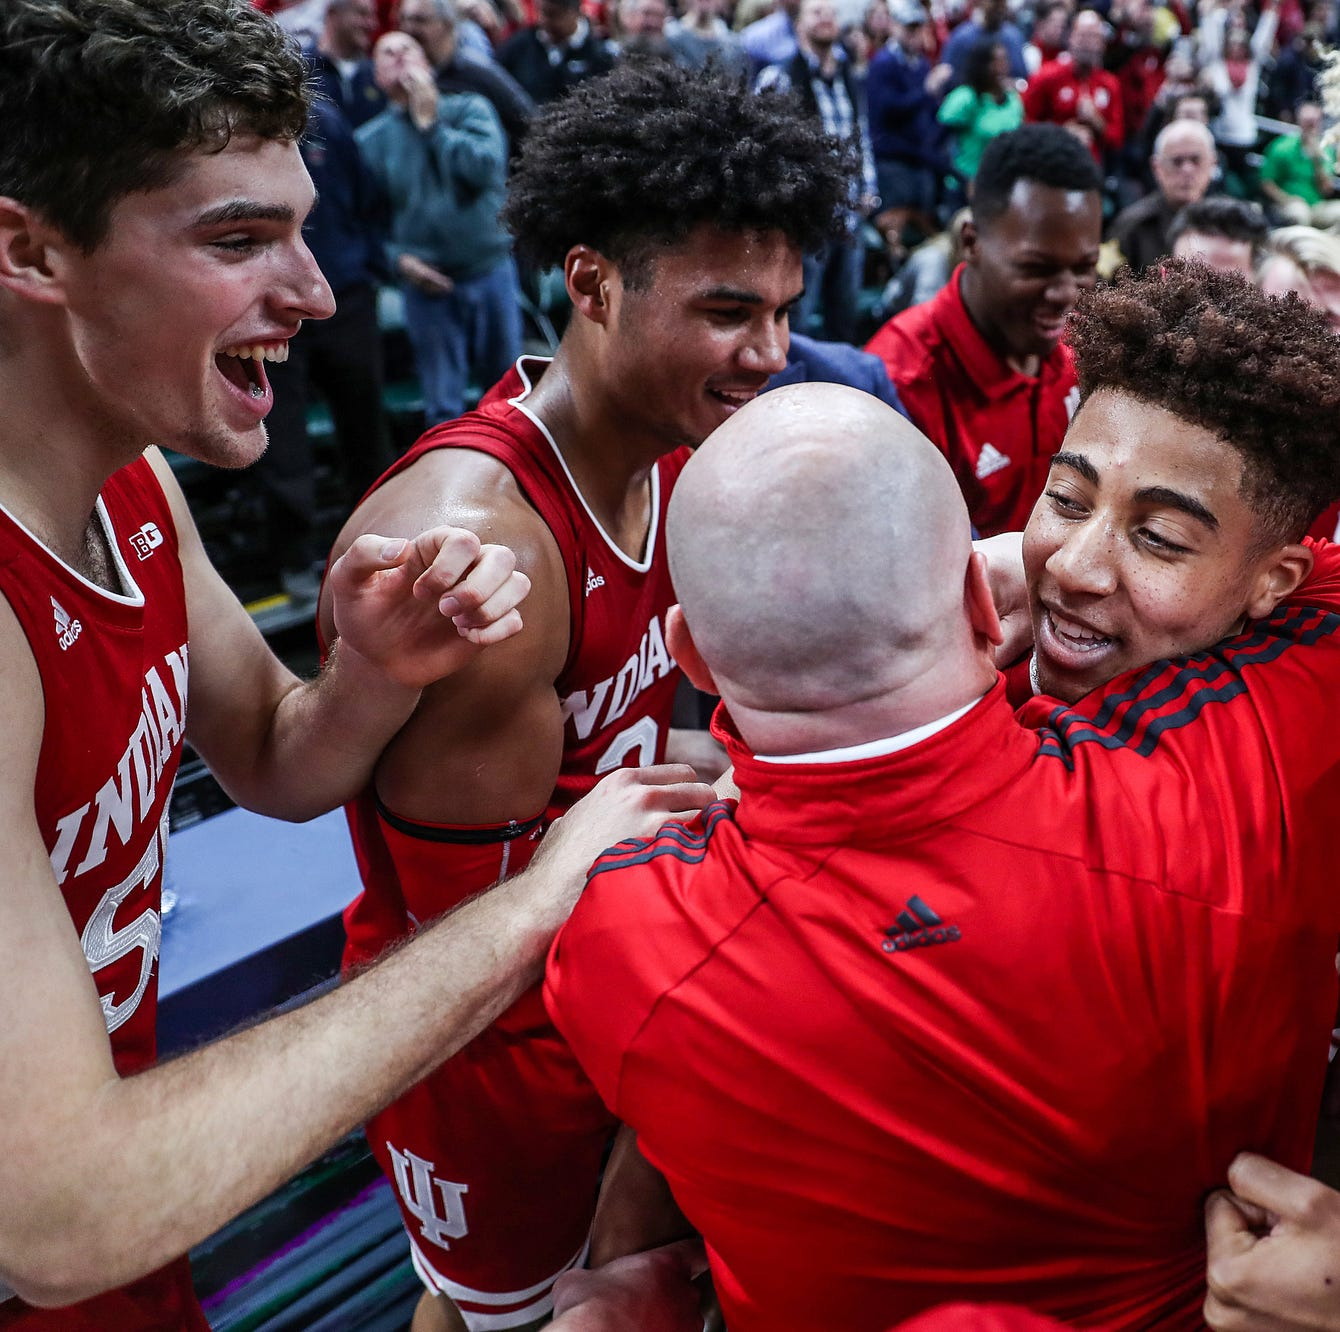 Buzzer breakdown: Last-second shot by Rob Phinisee lifts IU over Butler in Crossroads Classic